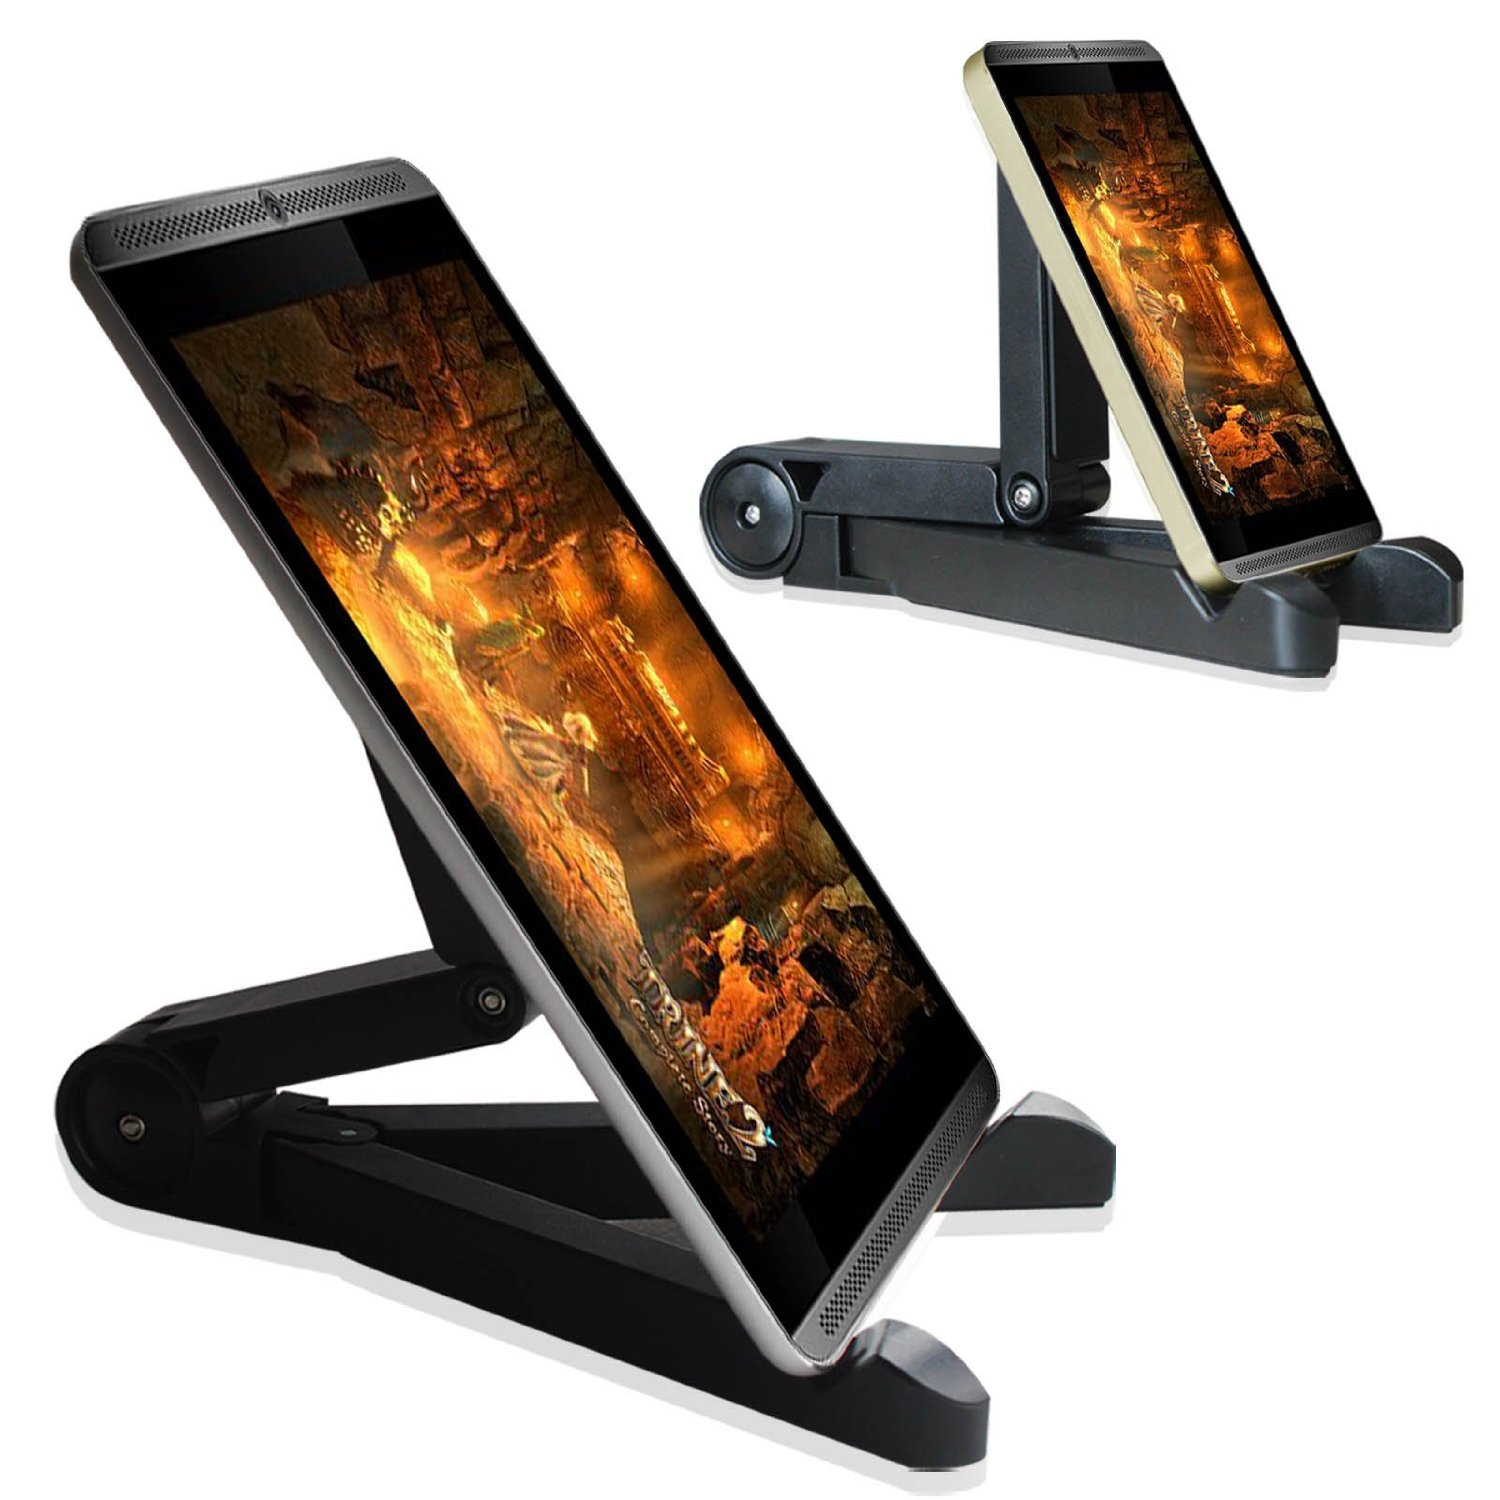 Fintie Multi Angle Travel Stand for All 5-12 inch Tablets, E-readers and Smartphones, fits iPad Pro 11, Samsung etc.